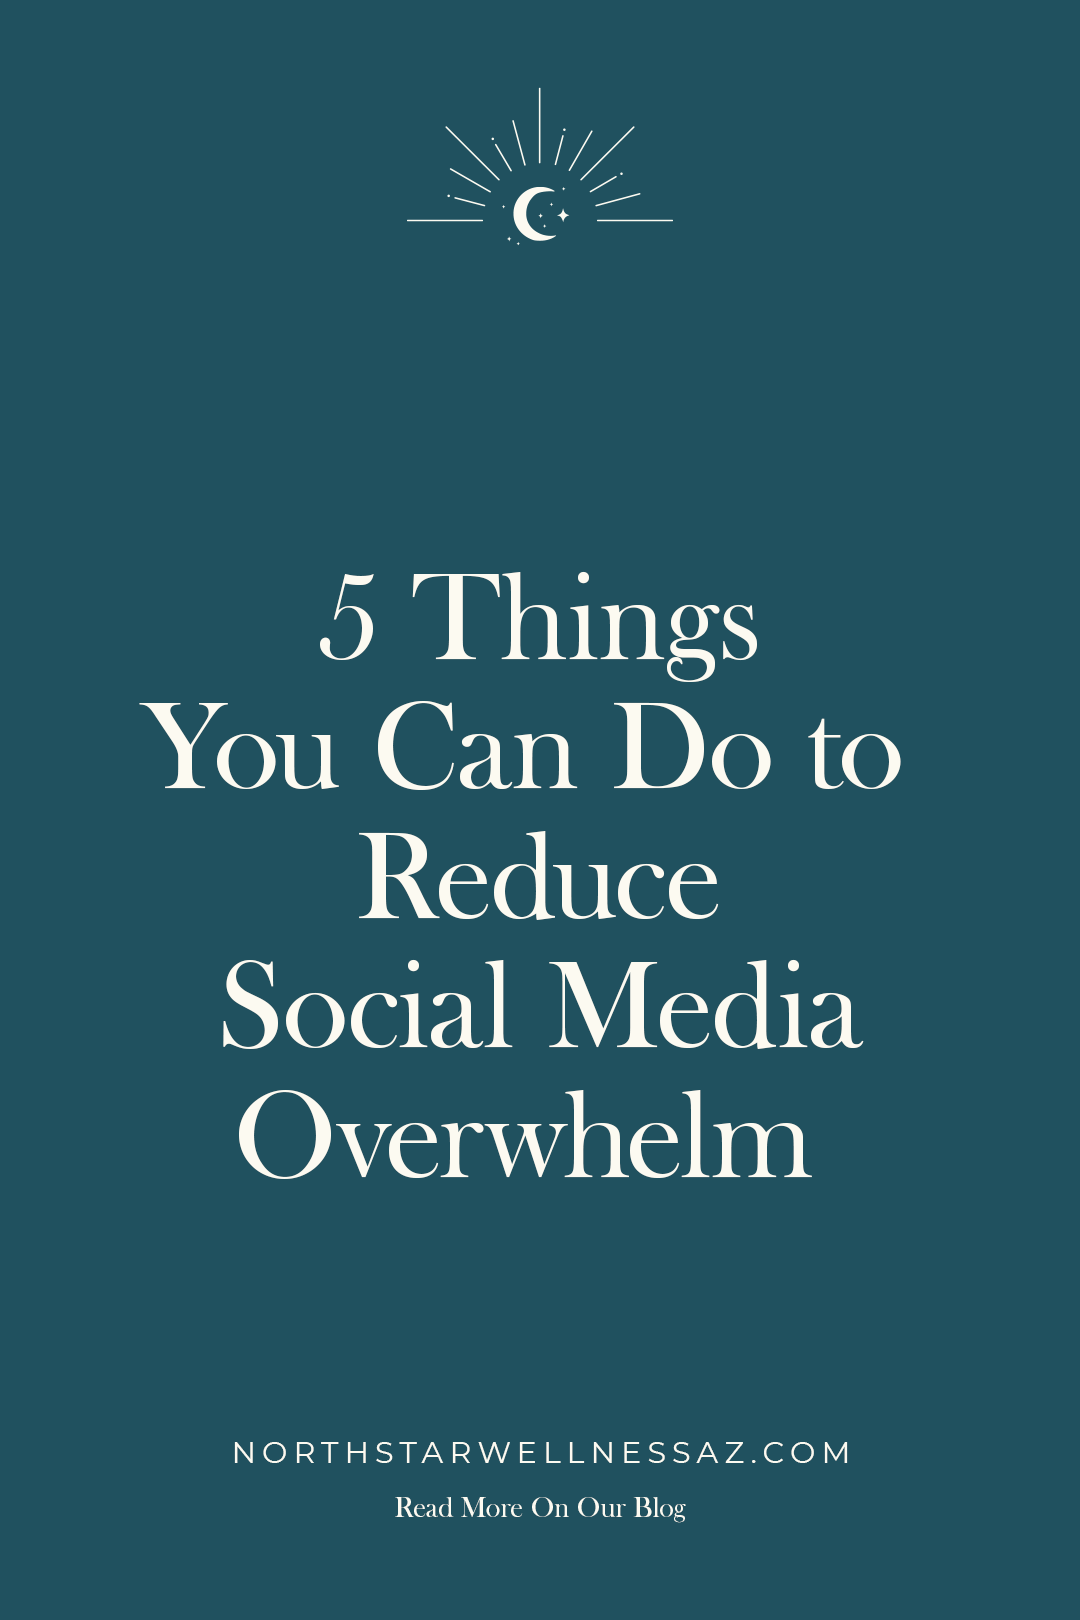 5 Things You Can Do to reduce social media overwhelm